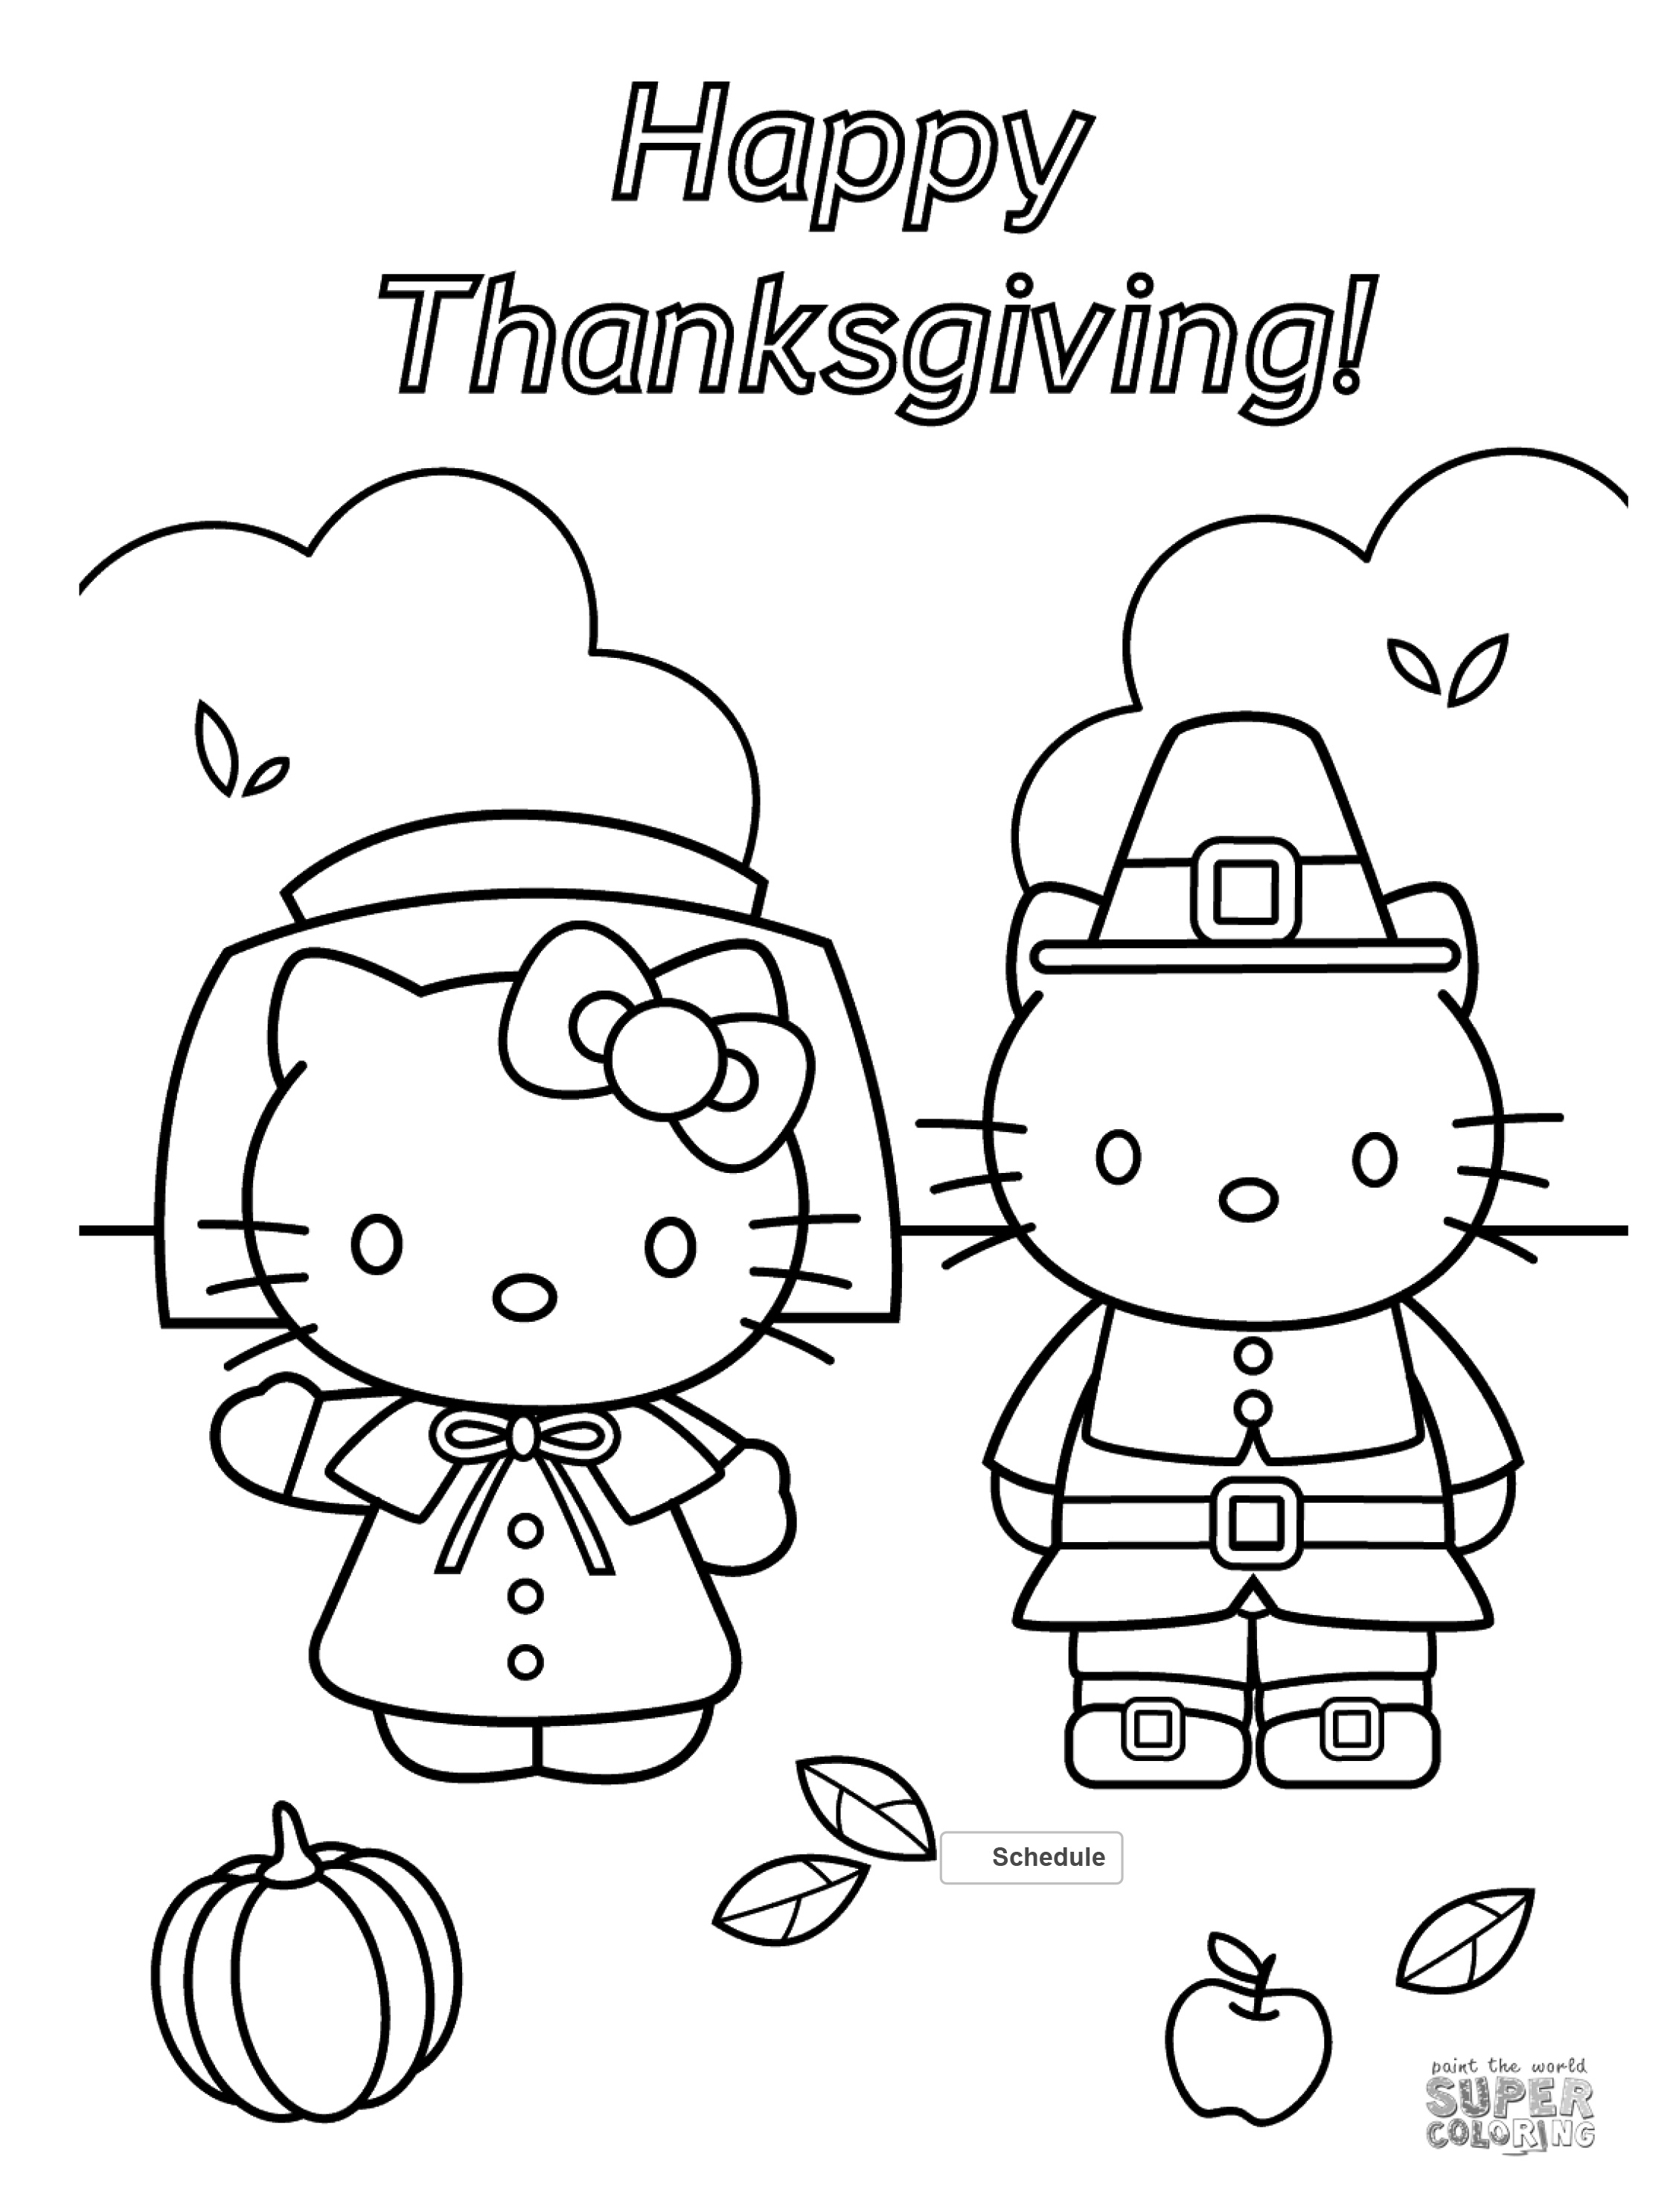 - FREE Thanksgiving Coloring Pages For Adults & Kids - Happiness Is